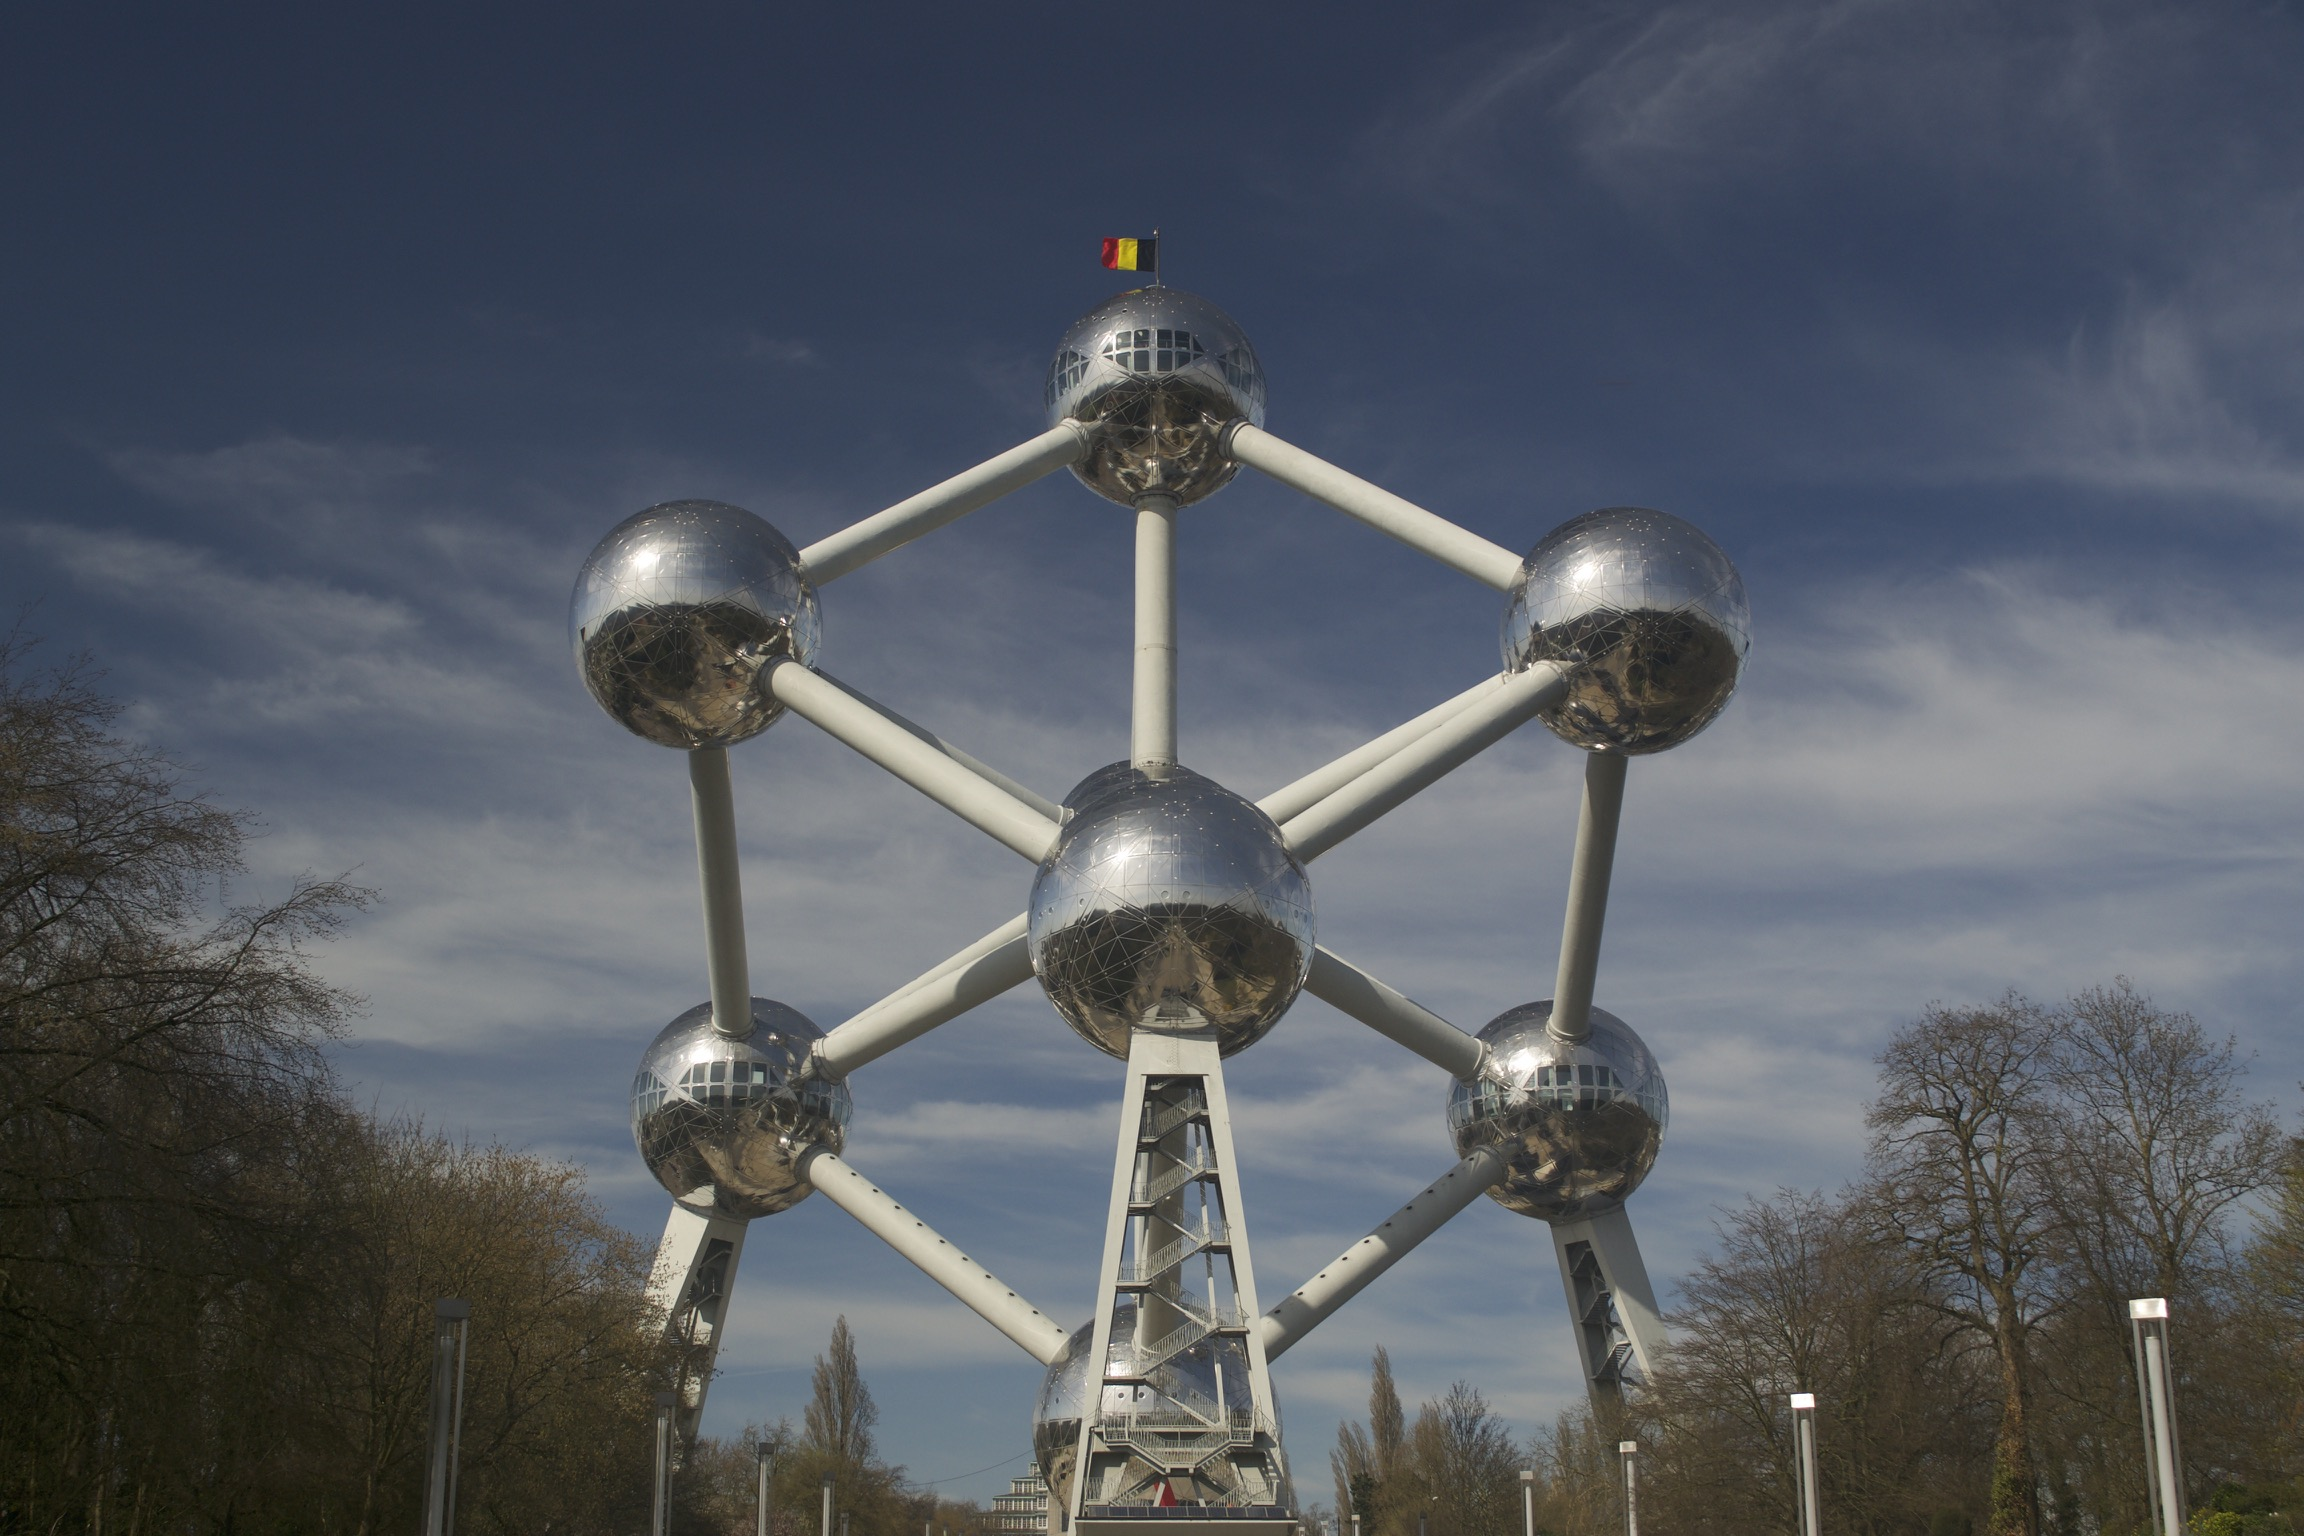 The Atomium seen from one of its cubic diagonals, revealing a hexagonal cross-section.